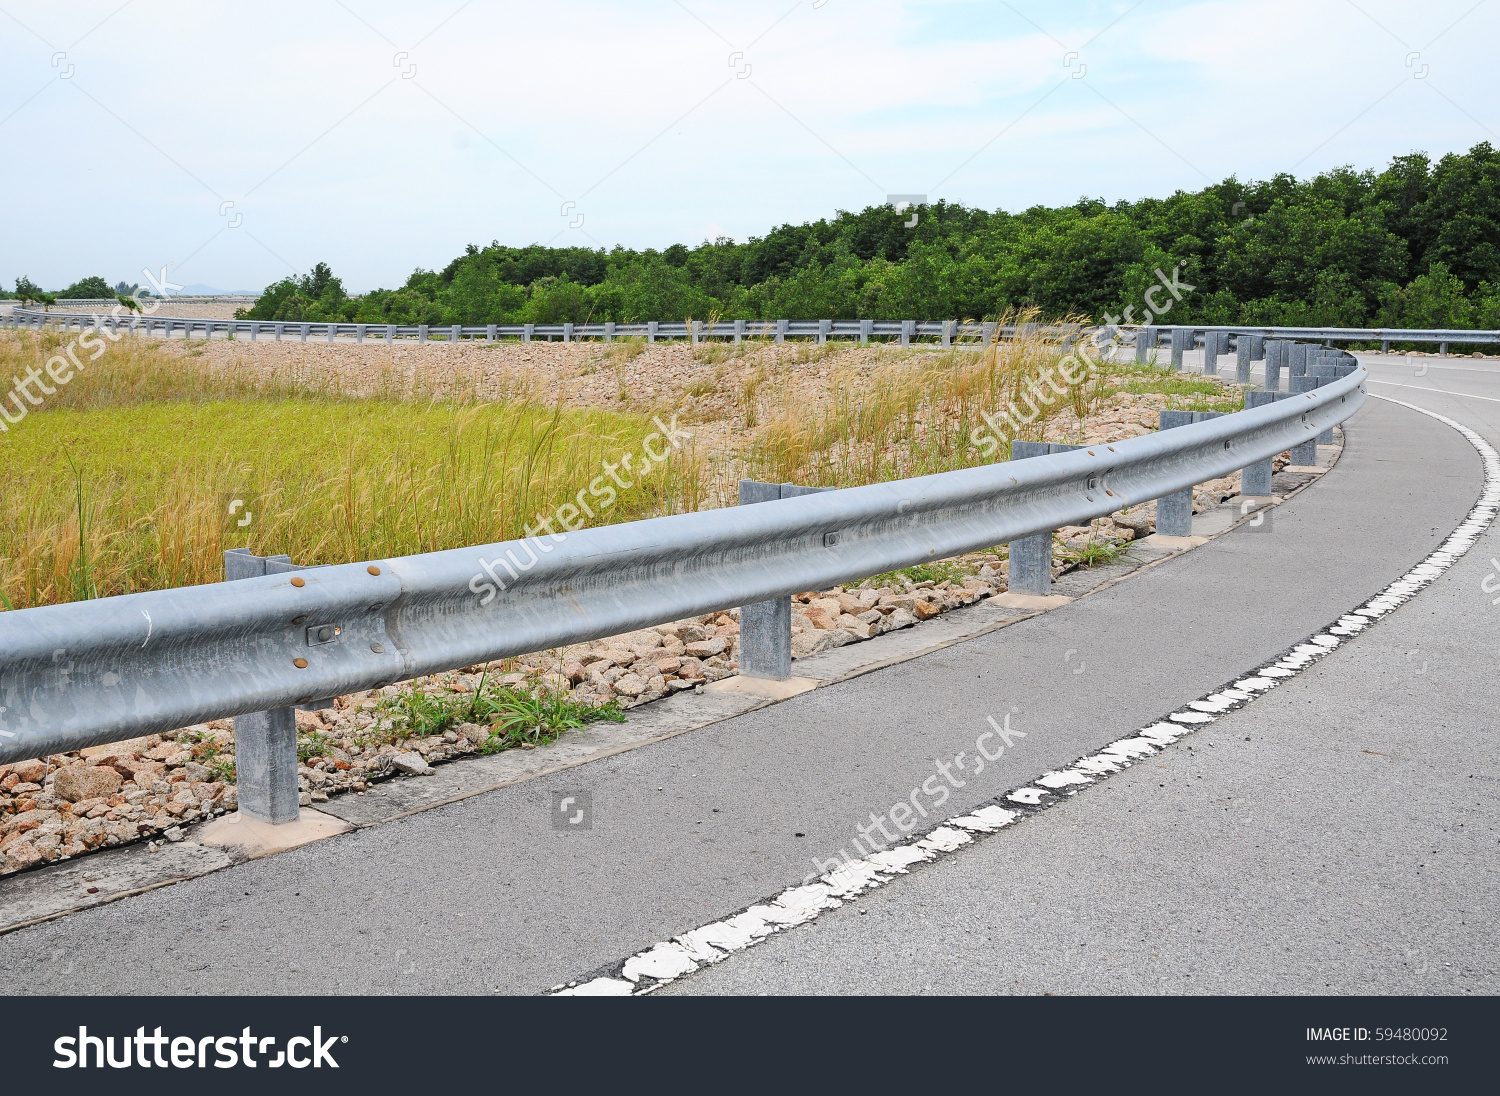 Highway Passing Through Countryside Crash Barrier Stock Photo.